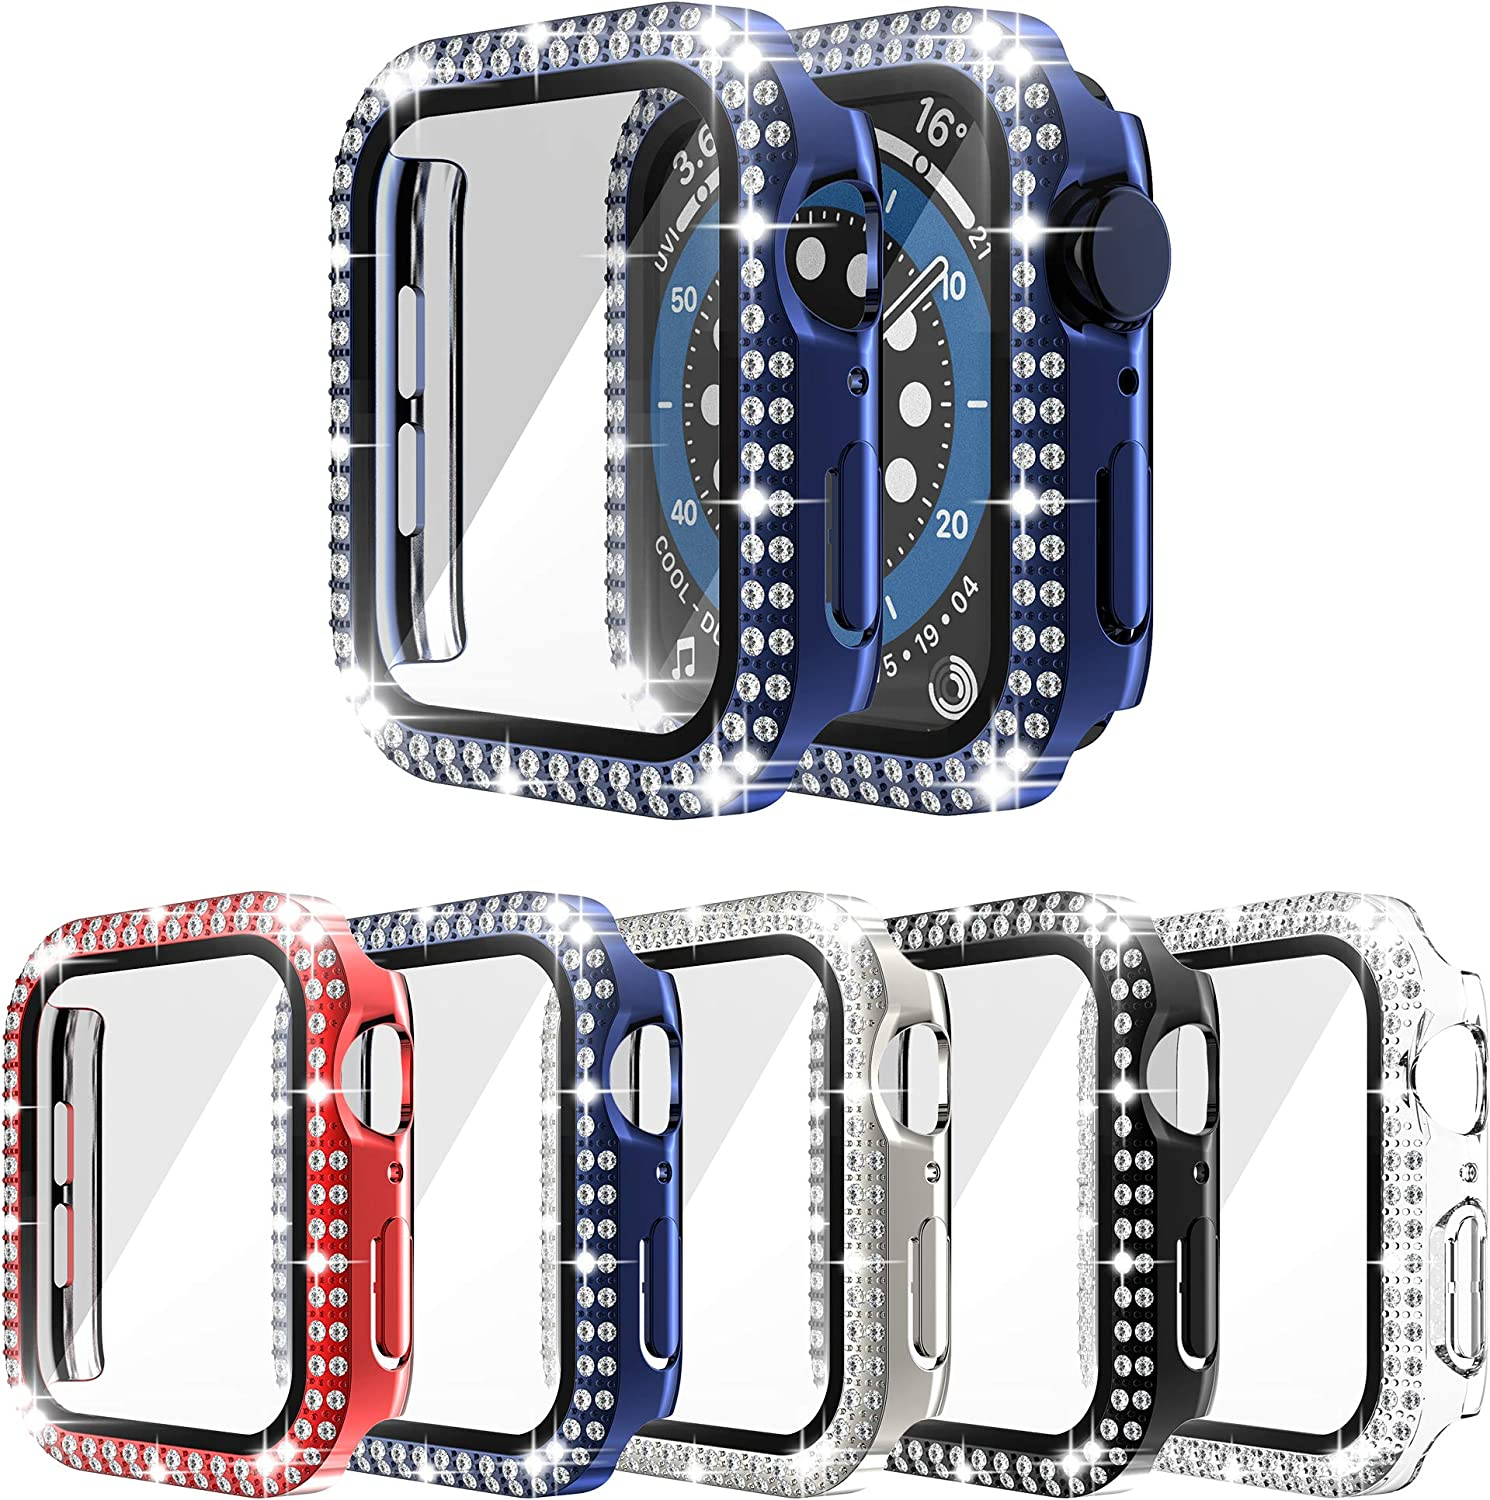 [5-Pack] RICHONE Bling Case Compatible with Apple Watch Series 3 2 1 42mm, Double Row Diamonds Cover with 3D Tempered Glass Screen Protector Bumper (Red+Navy Blue+Black+Silver+Clear, 42mm)